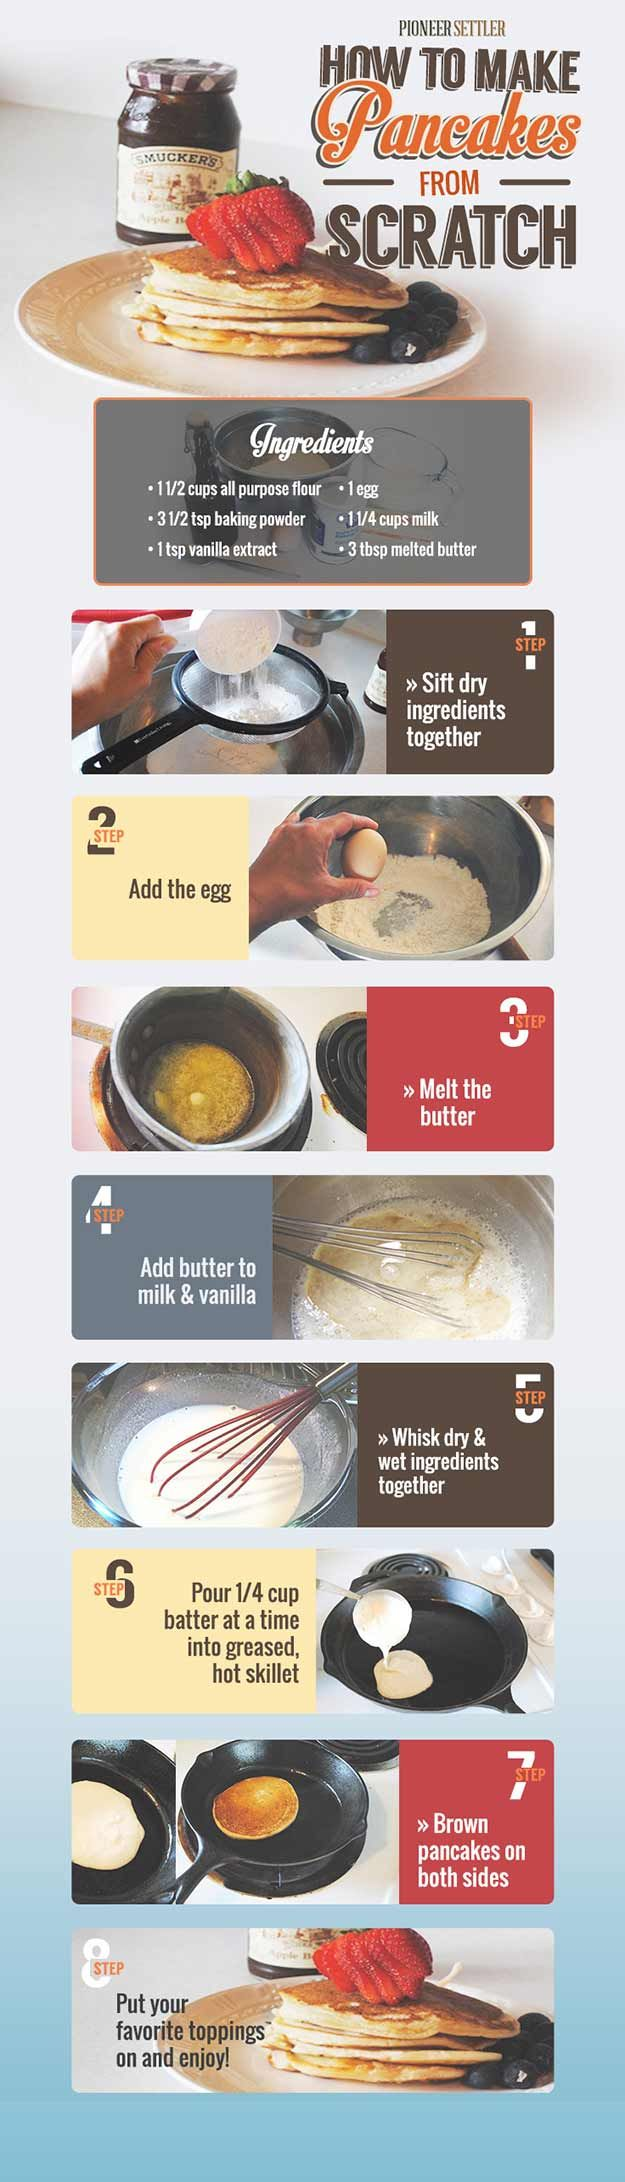 How to Make Pancakes from Scratch | Simple and Easy Step by Step Instructions - See Full Recipe at http://pioneersettler.com/how-to-make-pancakes-from-scratch/